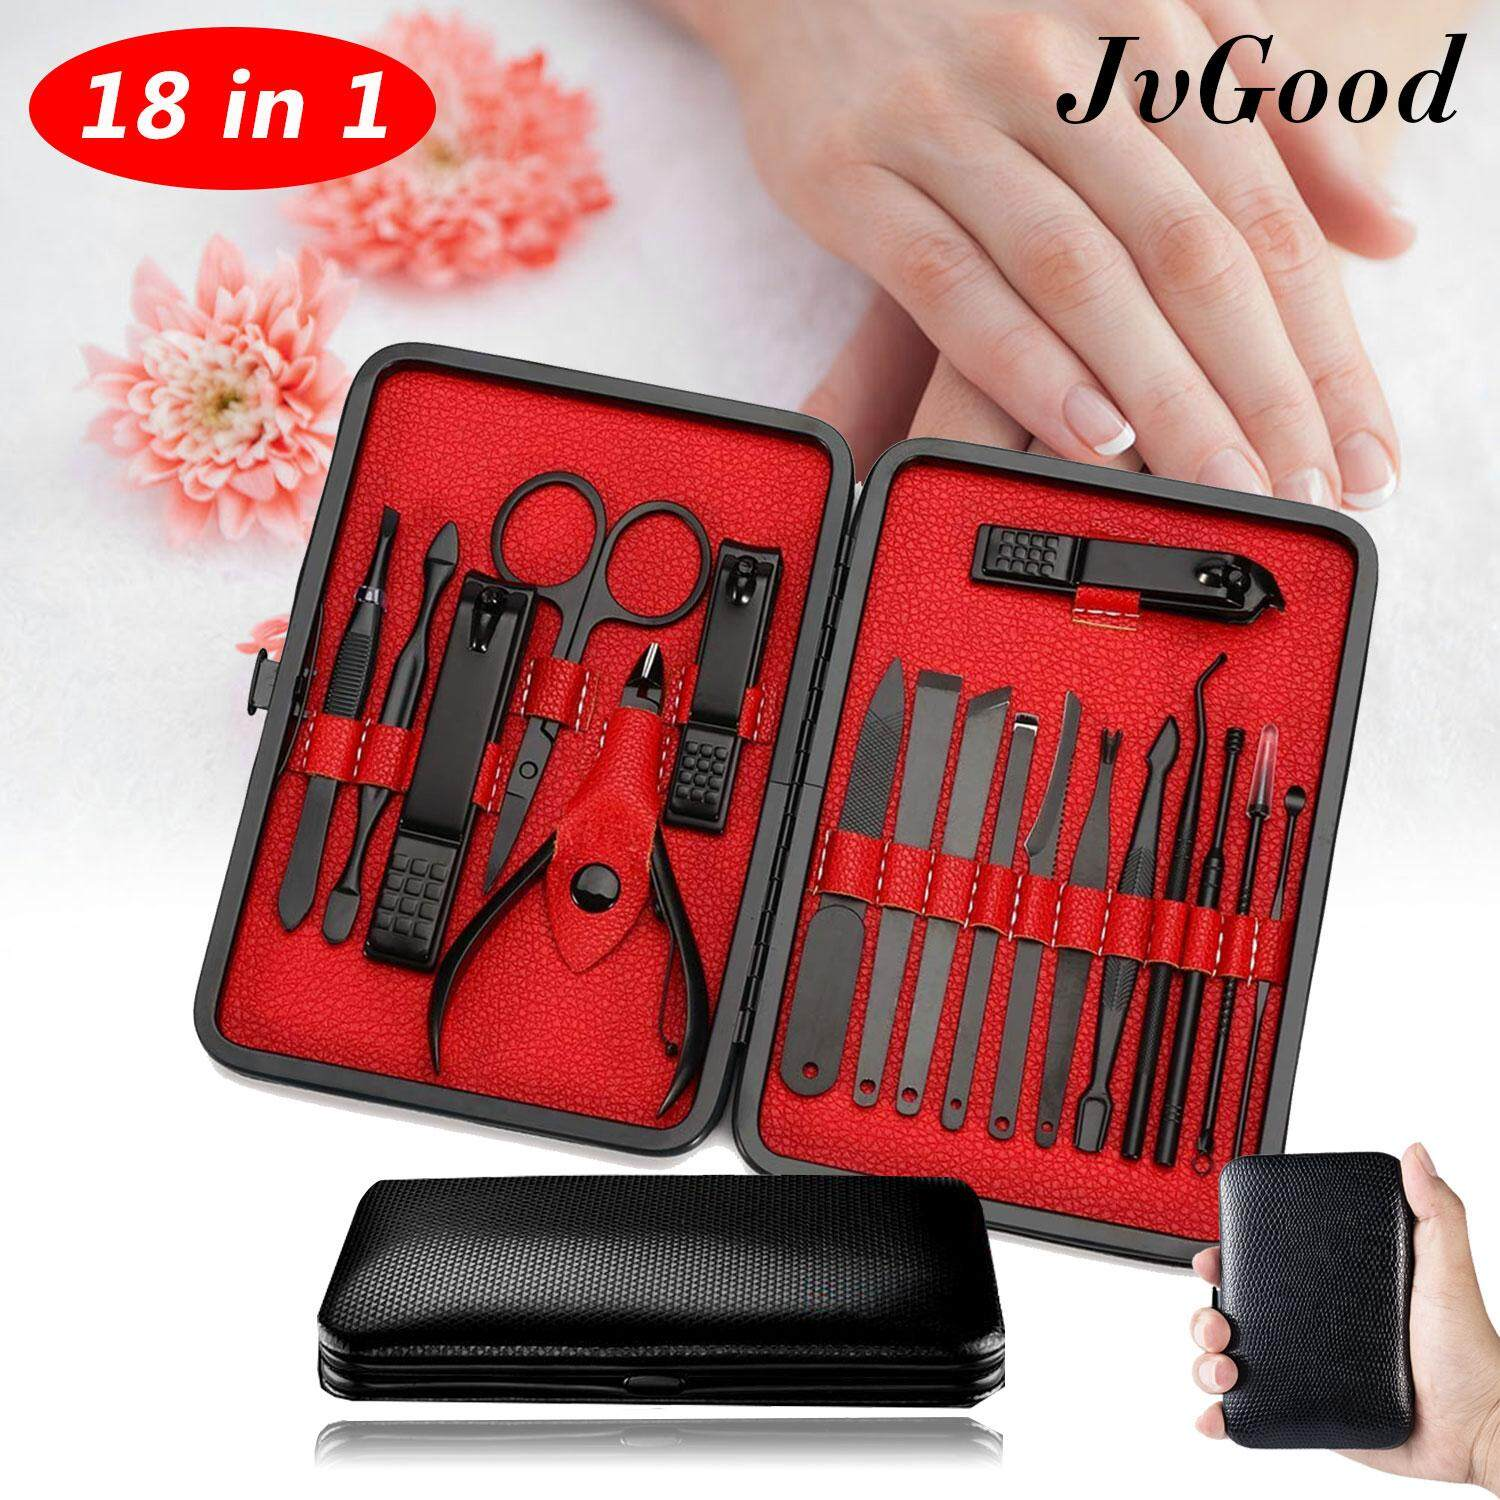 JvGood Nail Clippers Set 18 Pcs Stainless Steel Pedicure Manicure Kit Cuticle Grooming Set Personal Nail